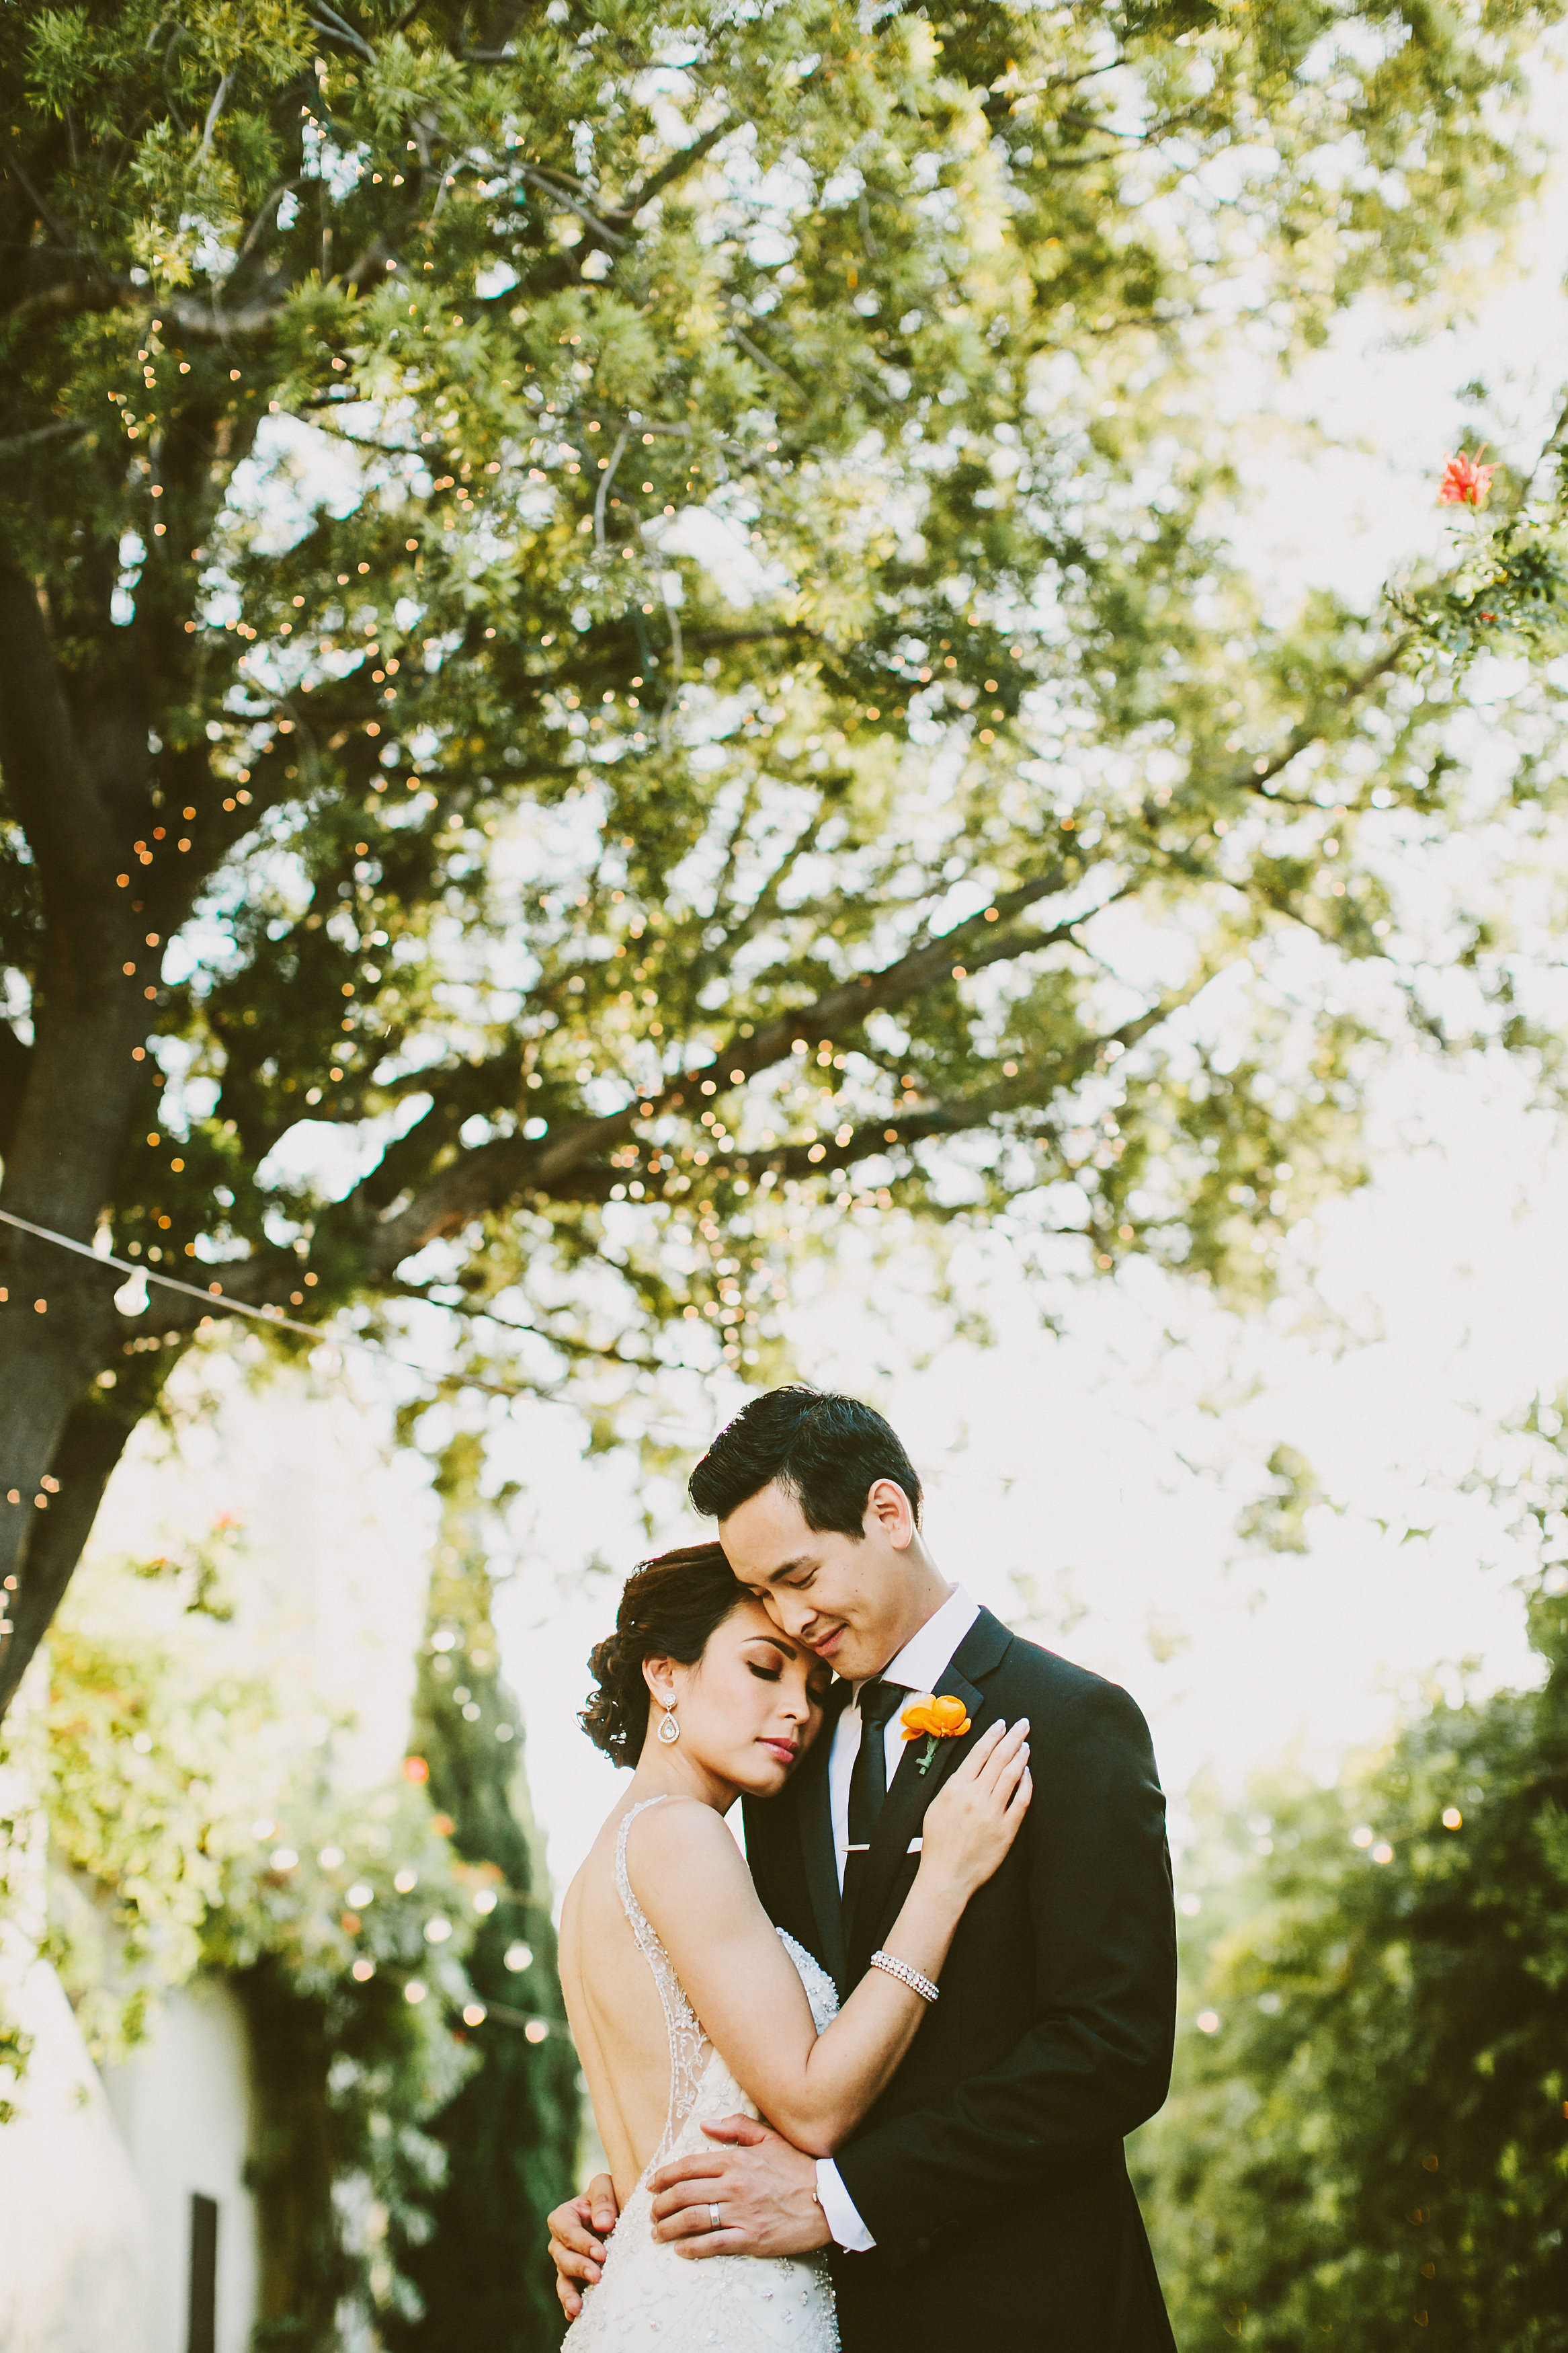 05-15-15 Jennifer & William 80.JPG